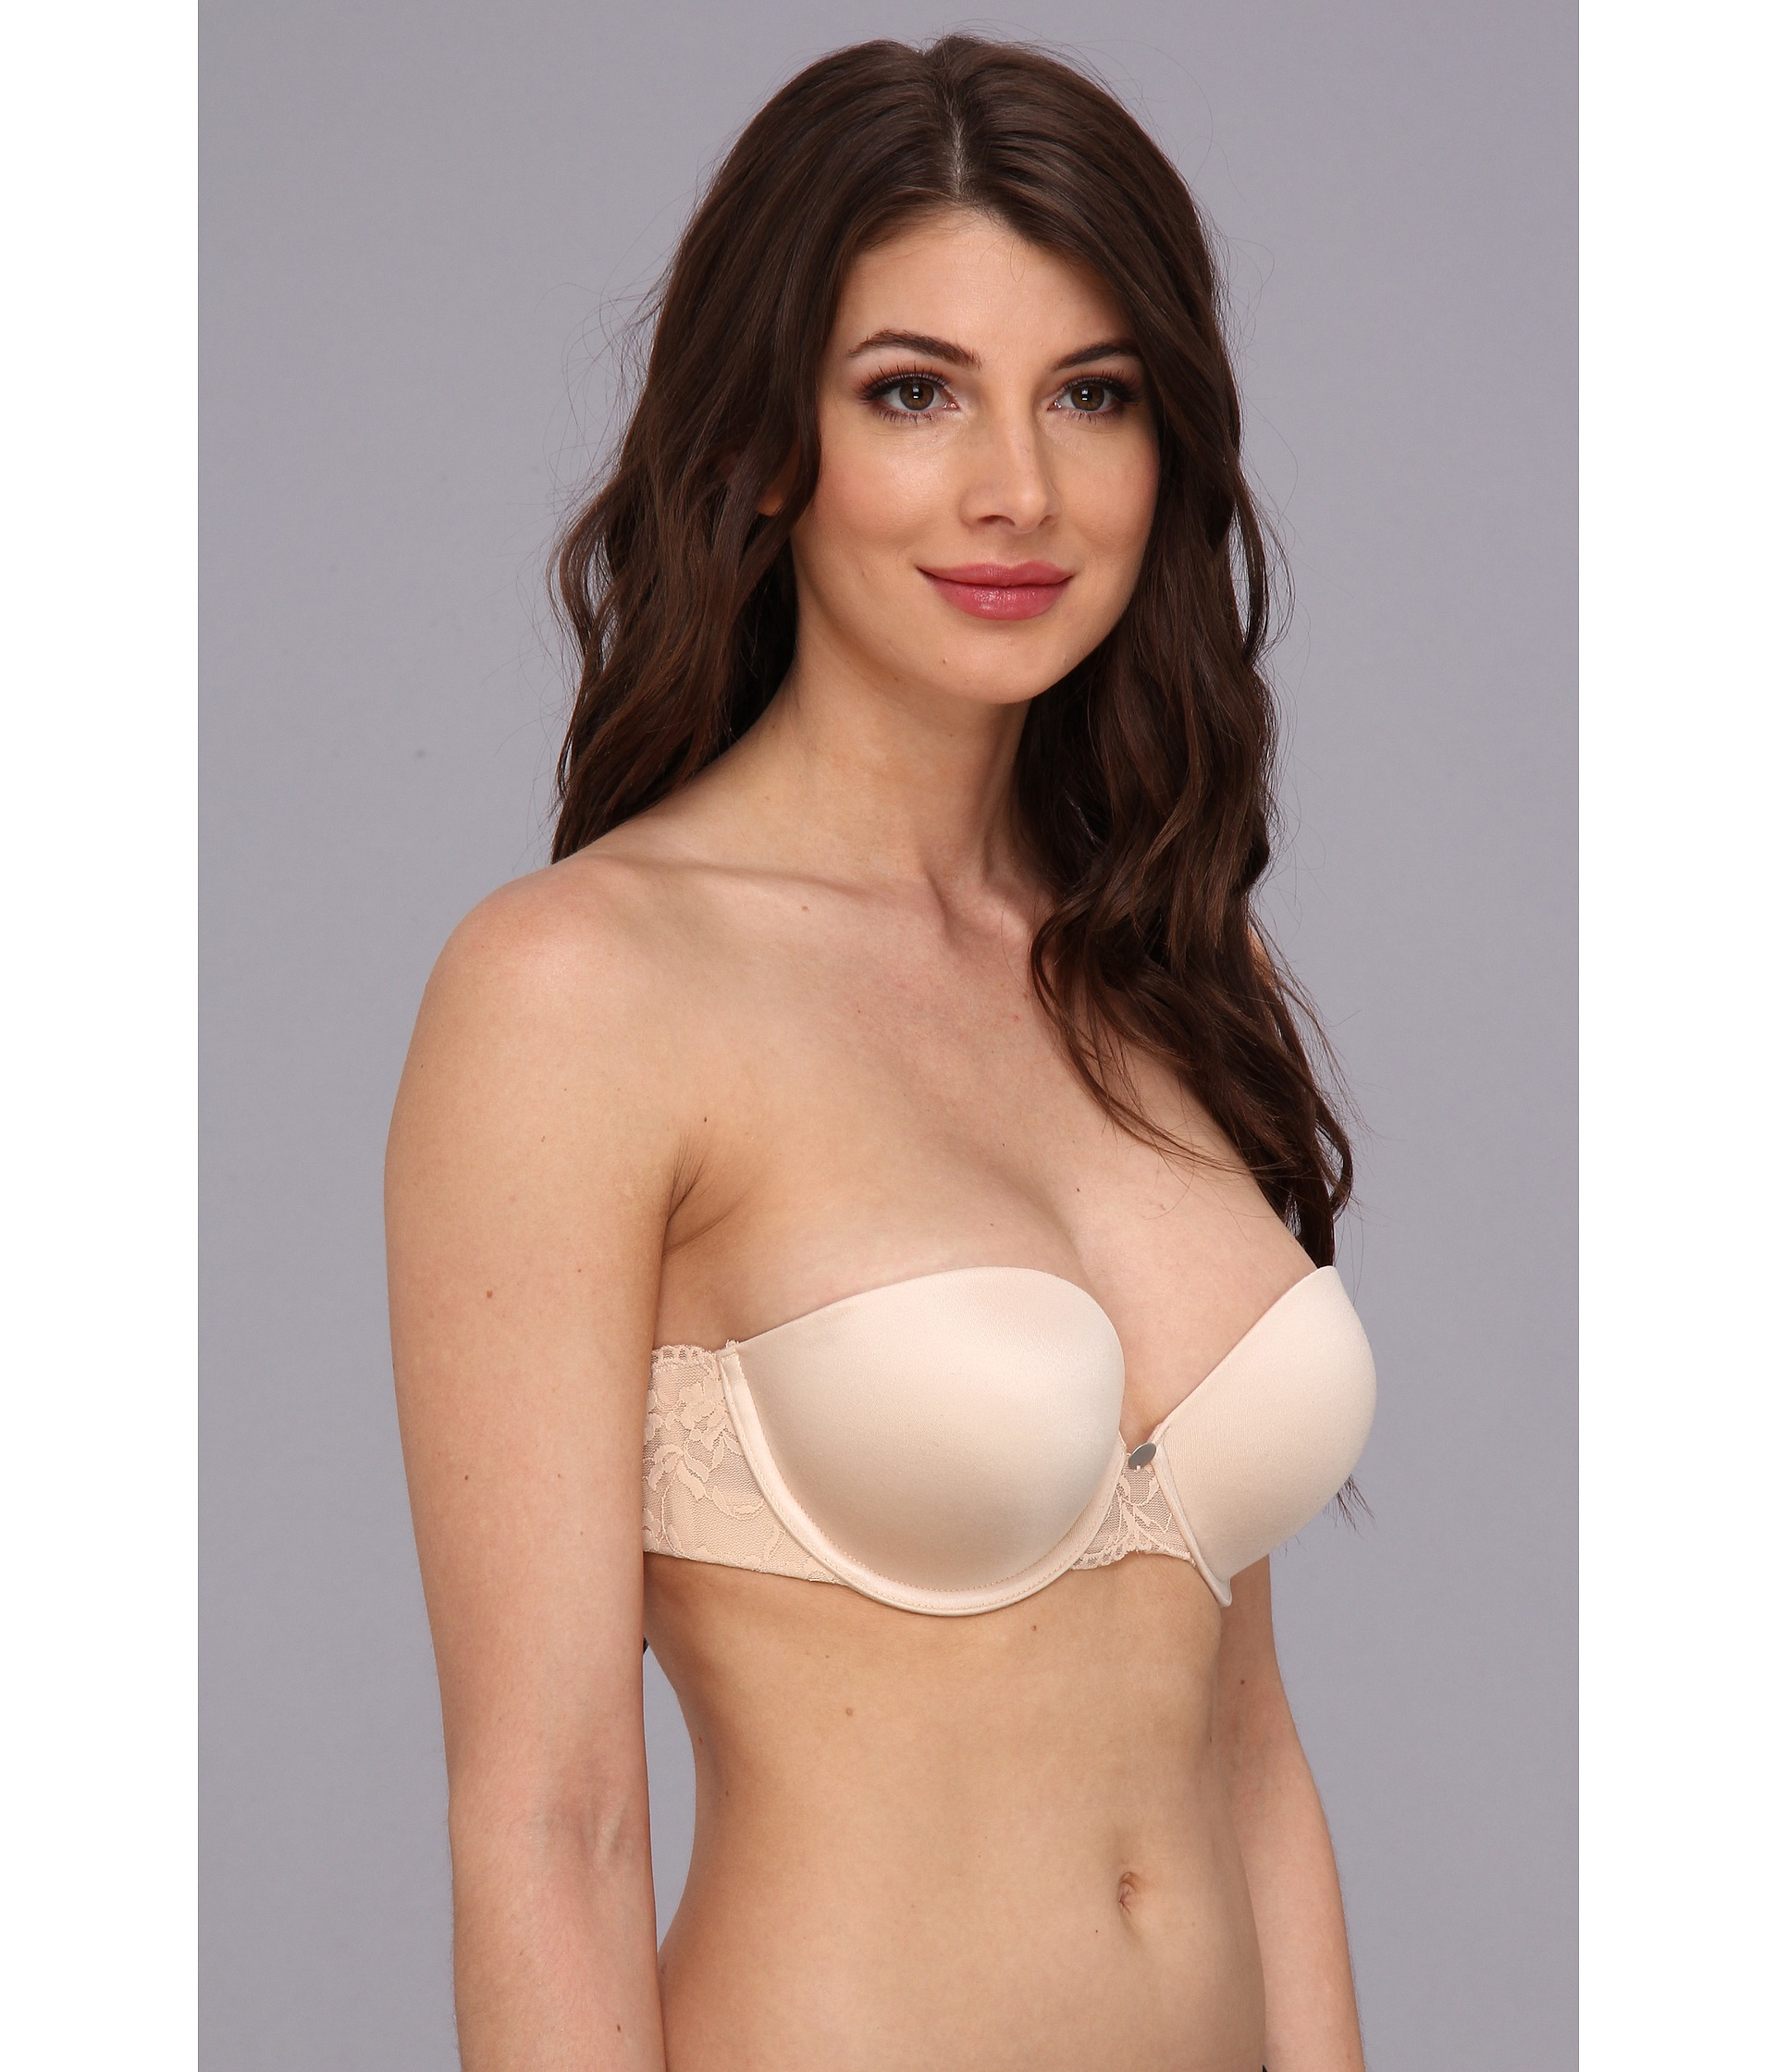 8a133eb428 Lyst - DKNY Super Glam Strapless Push-up Bra 458111 in Natural